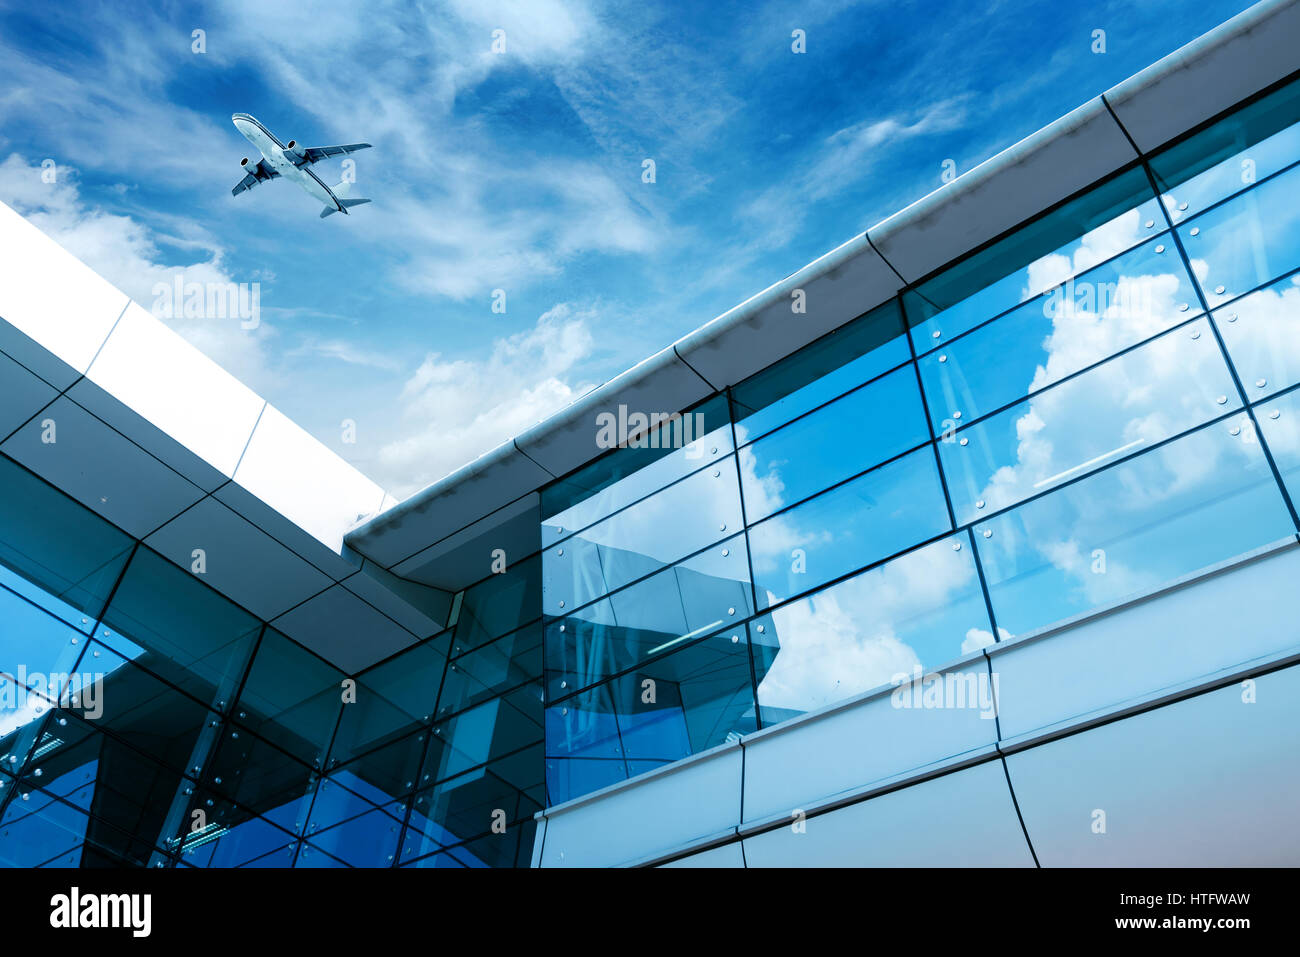 glass curtain wall and aircraft against a blue sky Stock Photo